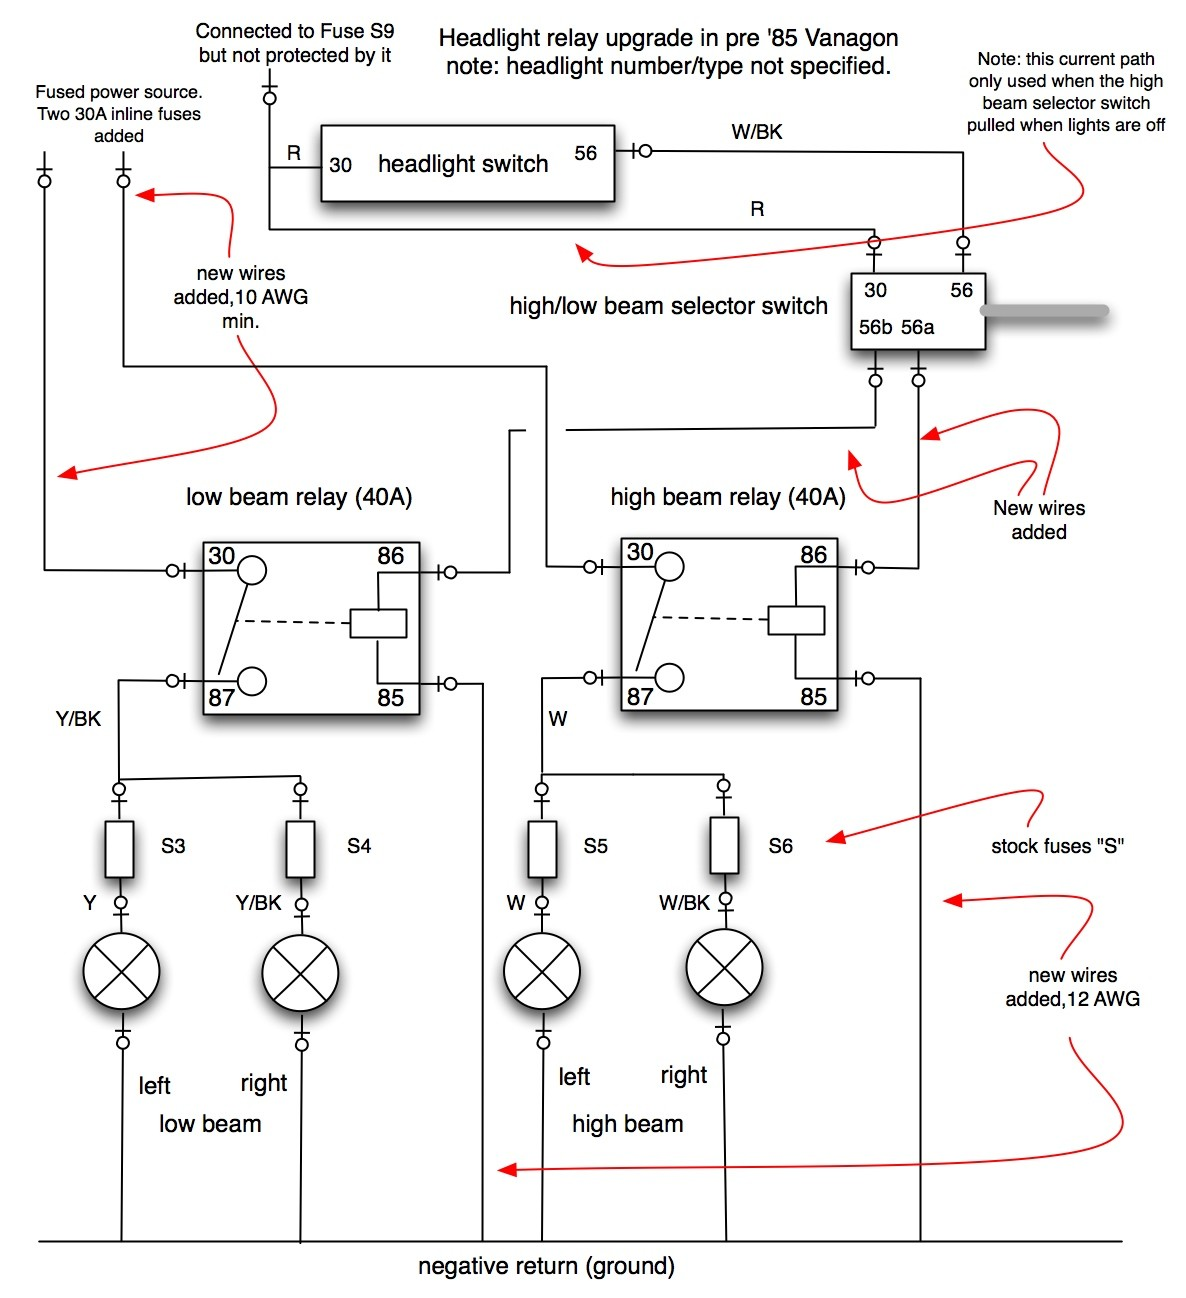 Headlight Relay Wiring Diagram New Image Potential Jerrysmasterkeyforyouand